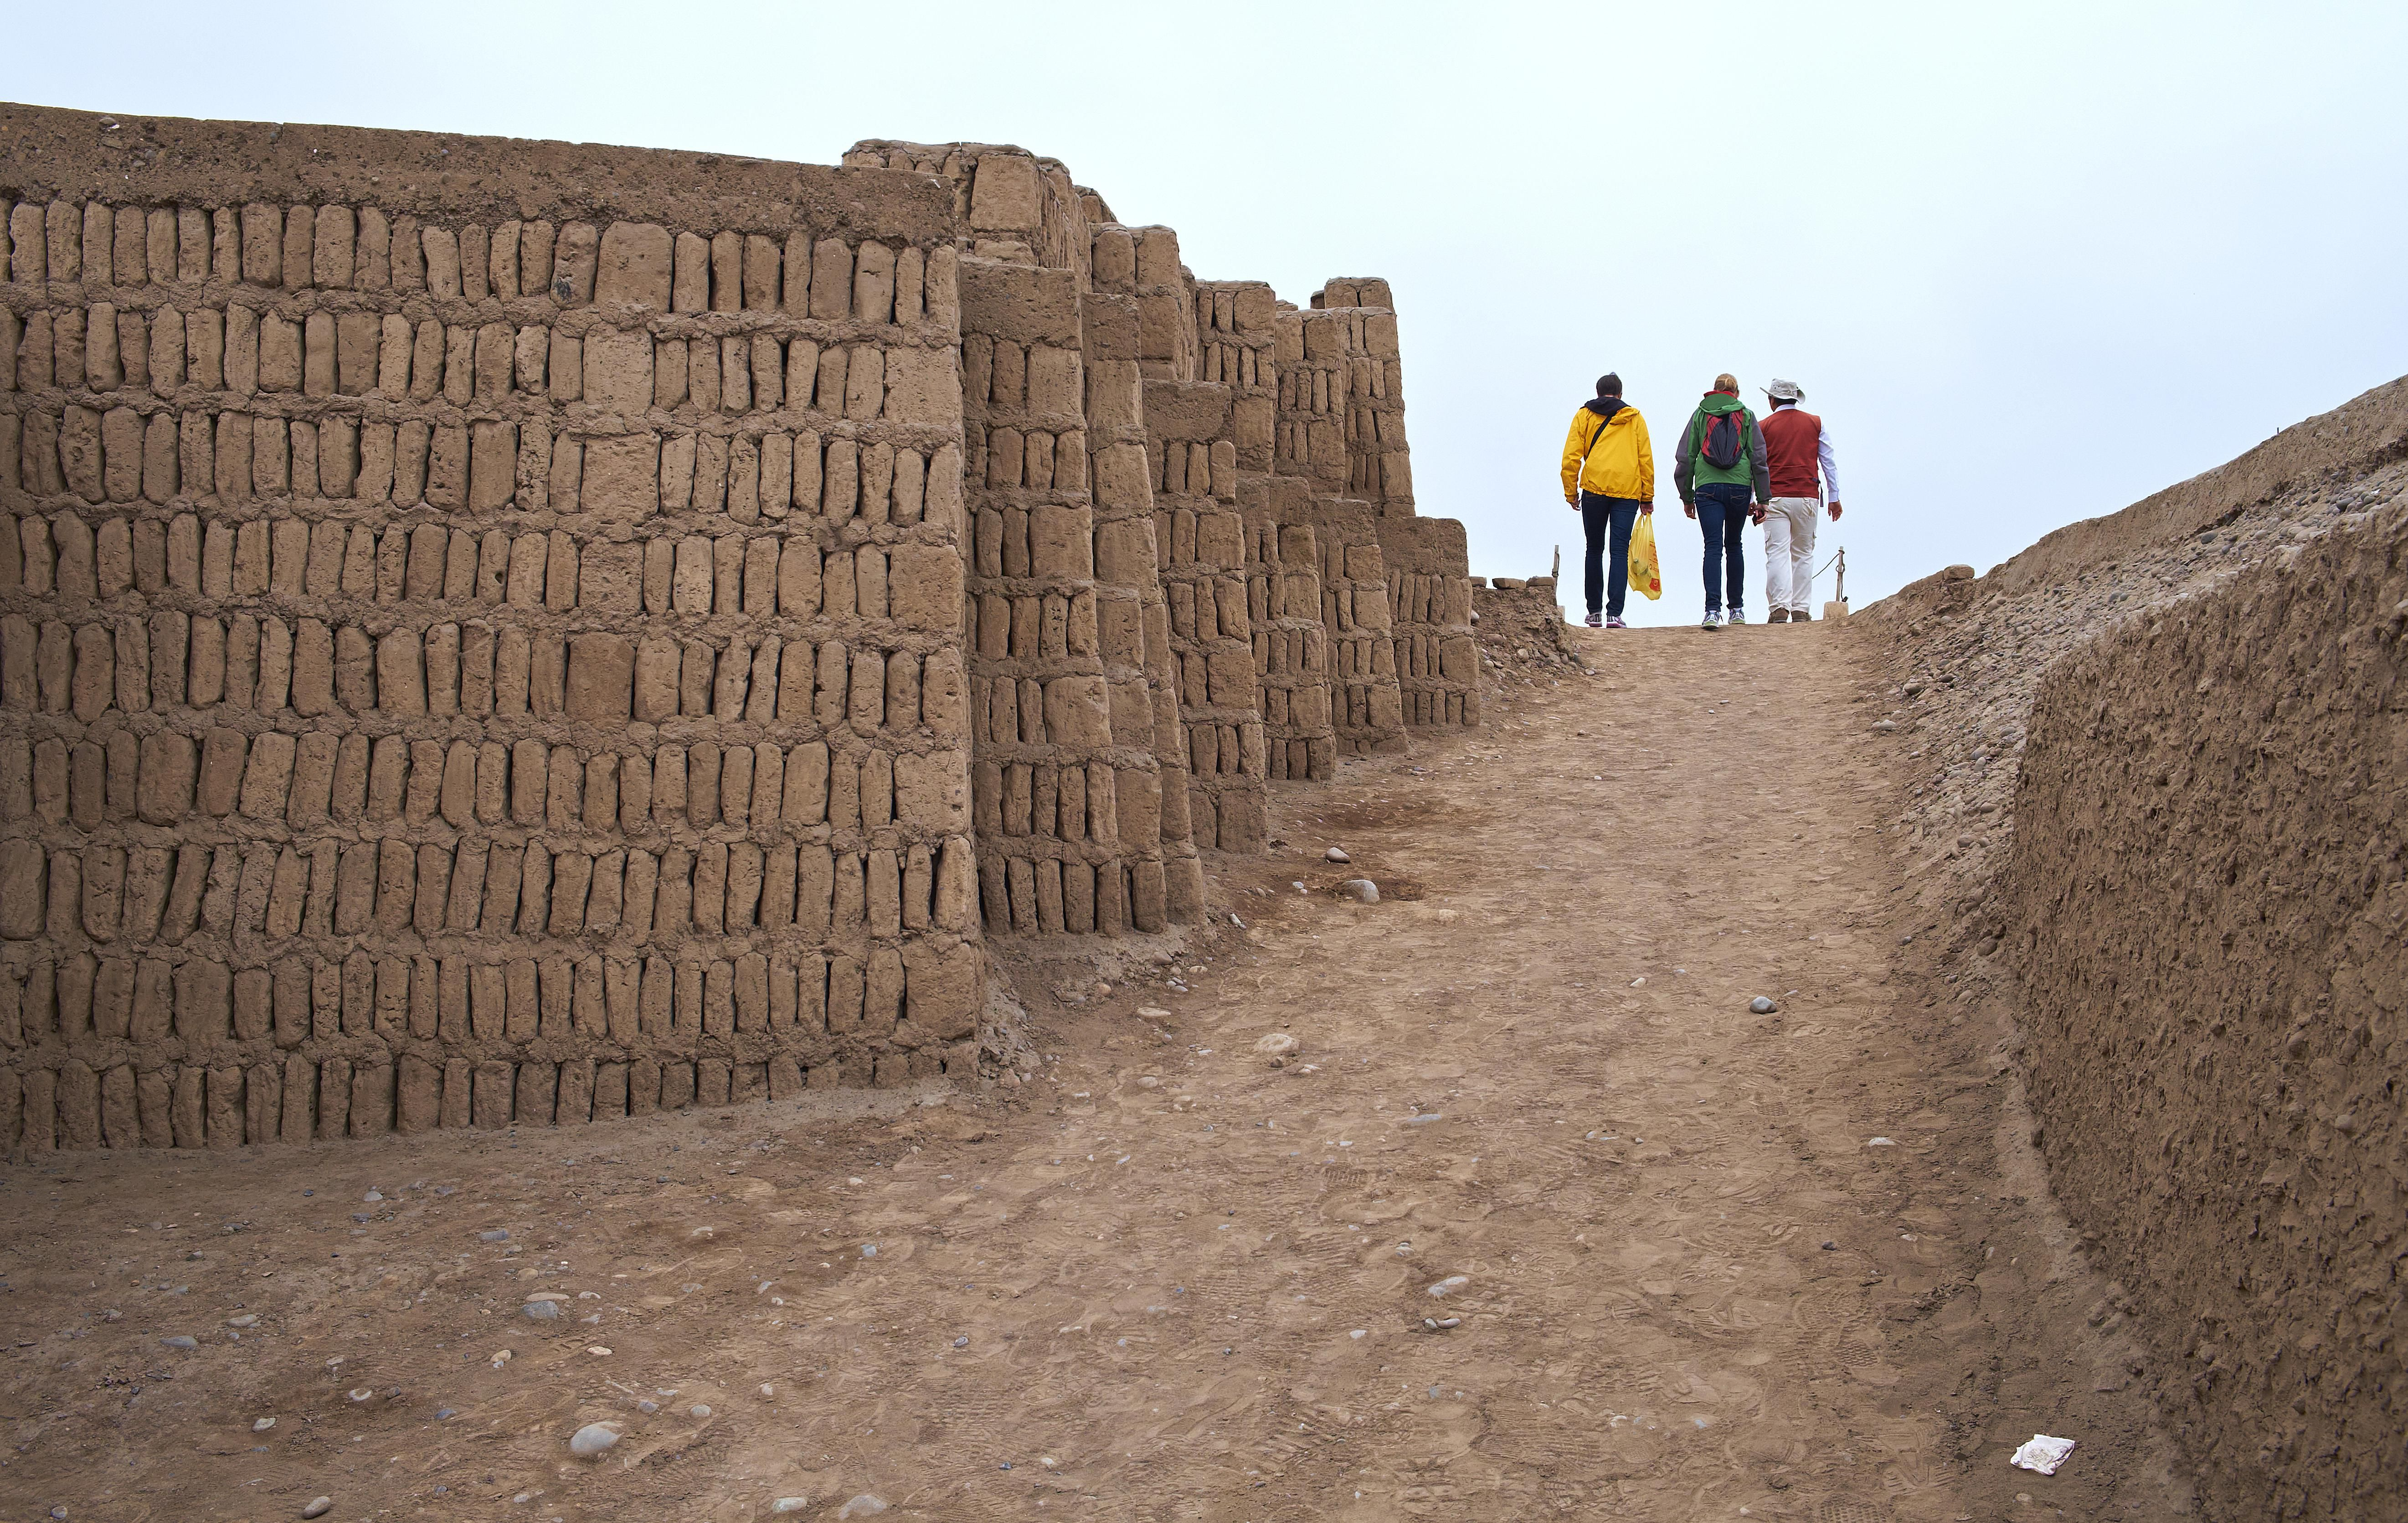 People walking along Huaca Pucllana ruins.